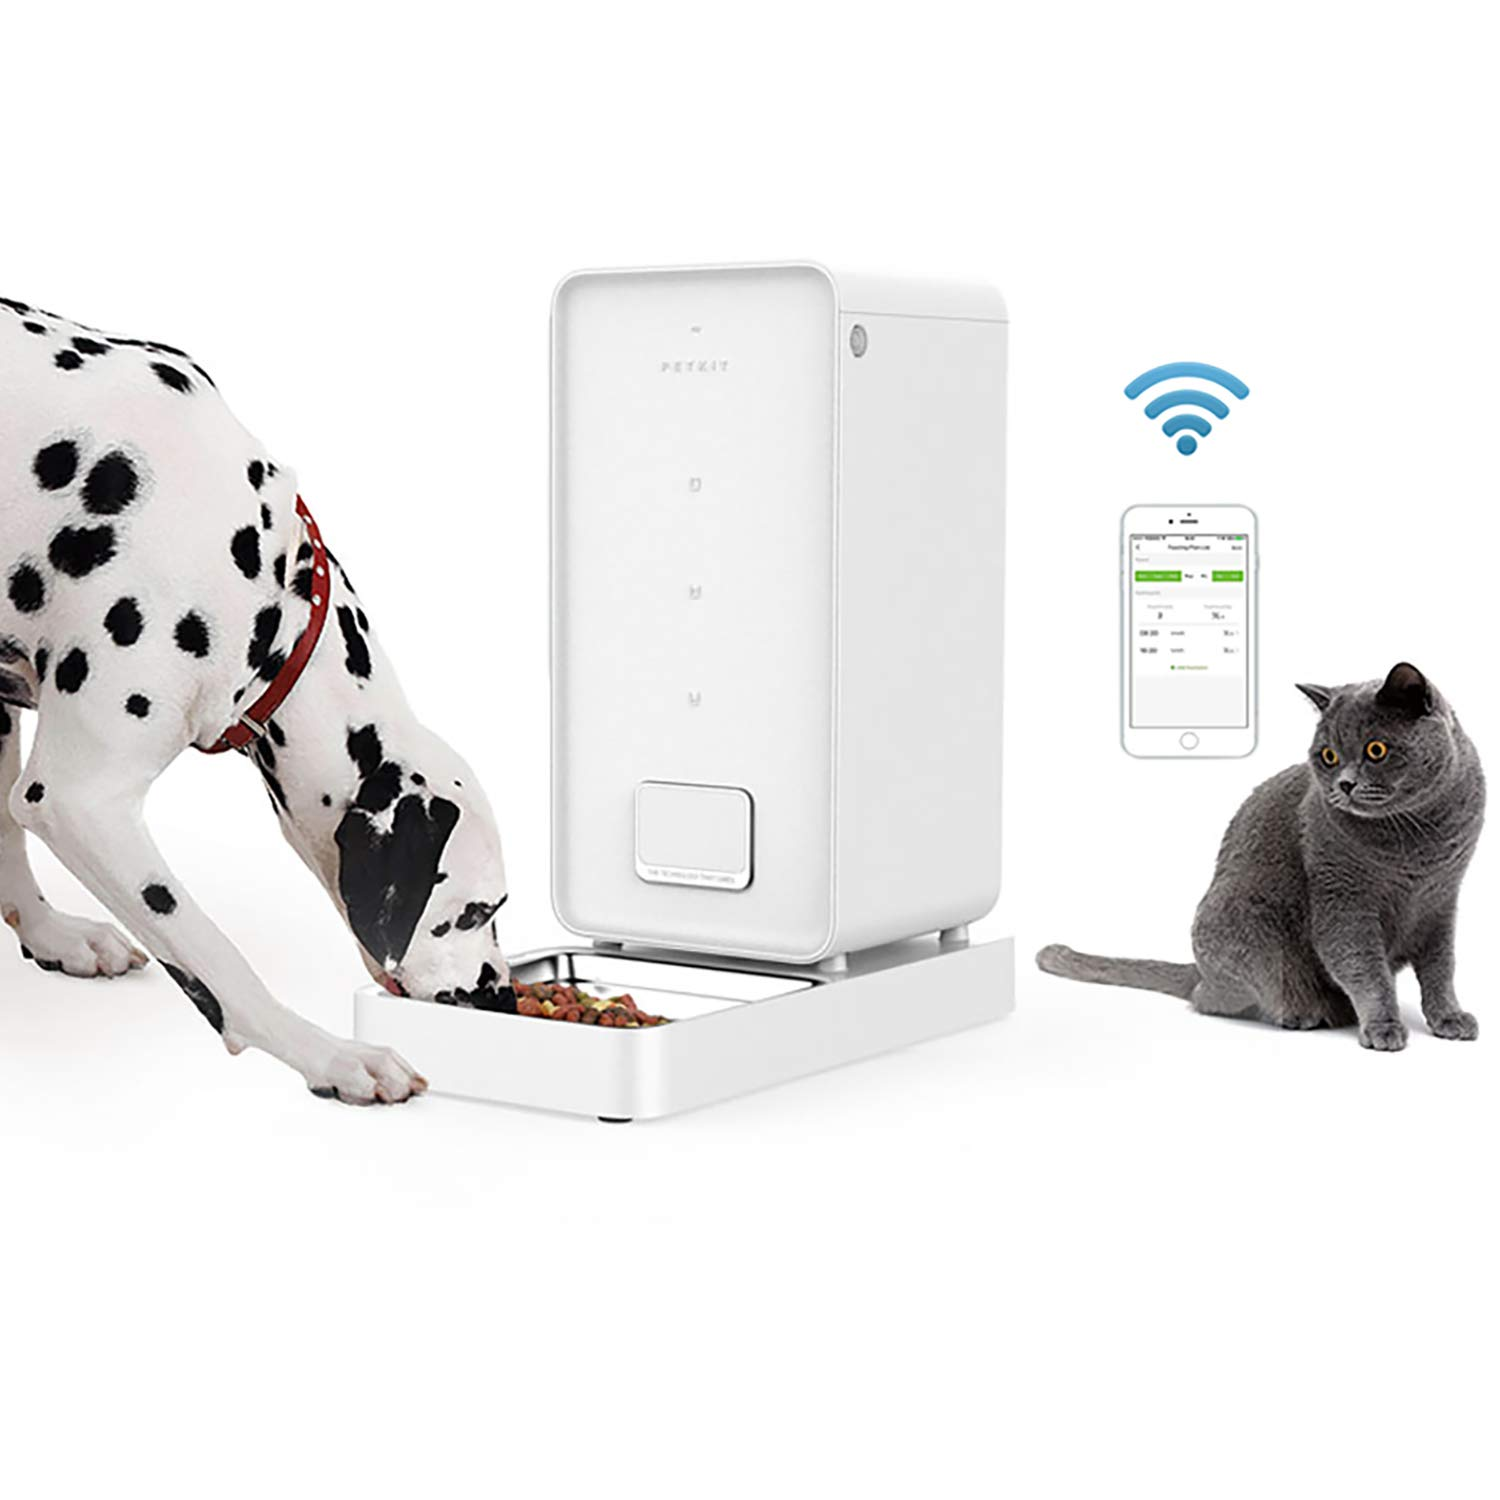 PETKIT Automatic Pet Feeder, Smart Food Feeder for Cats and Dogs - A Never Stuck Auto Dog Food Dispenser, Wi-Fi App Control, Timer Programmable, Work with Alexa(5.9L Large Capacity)